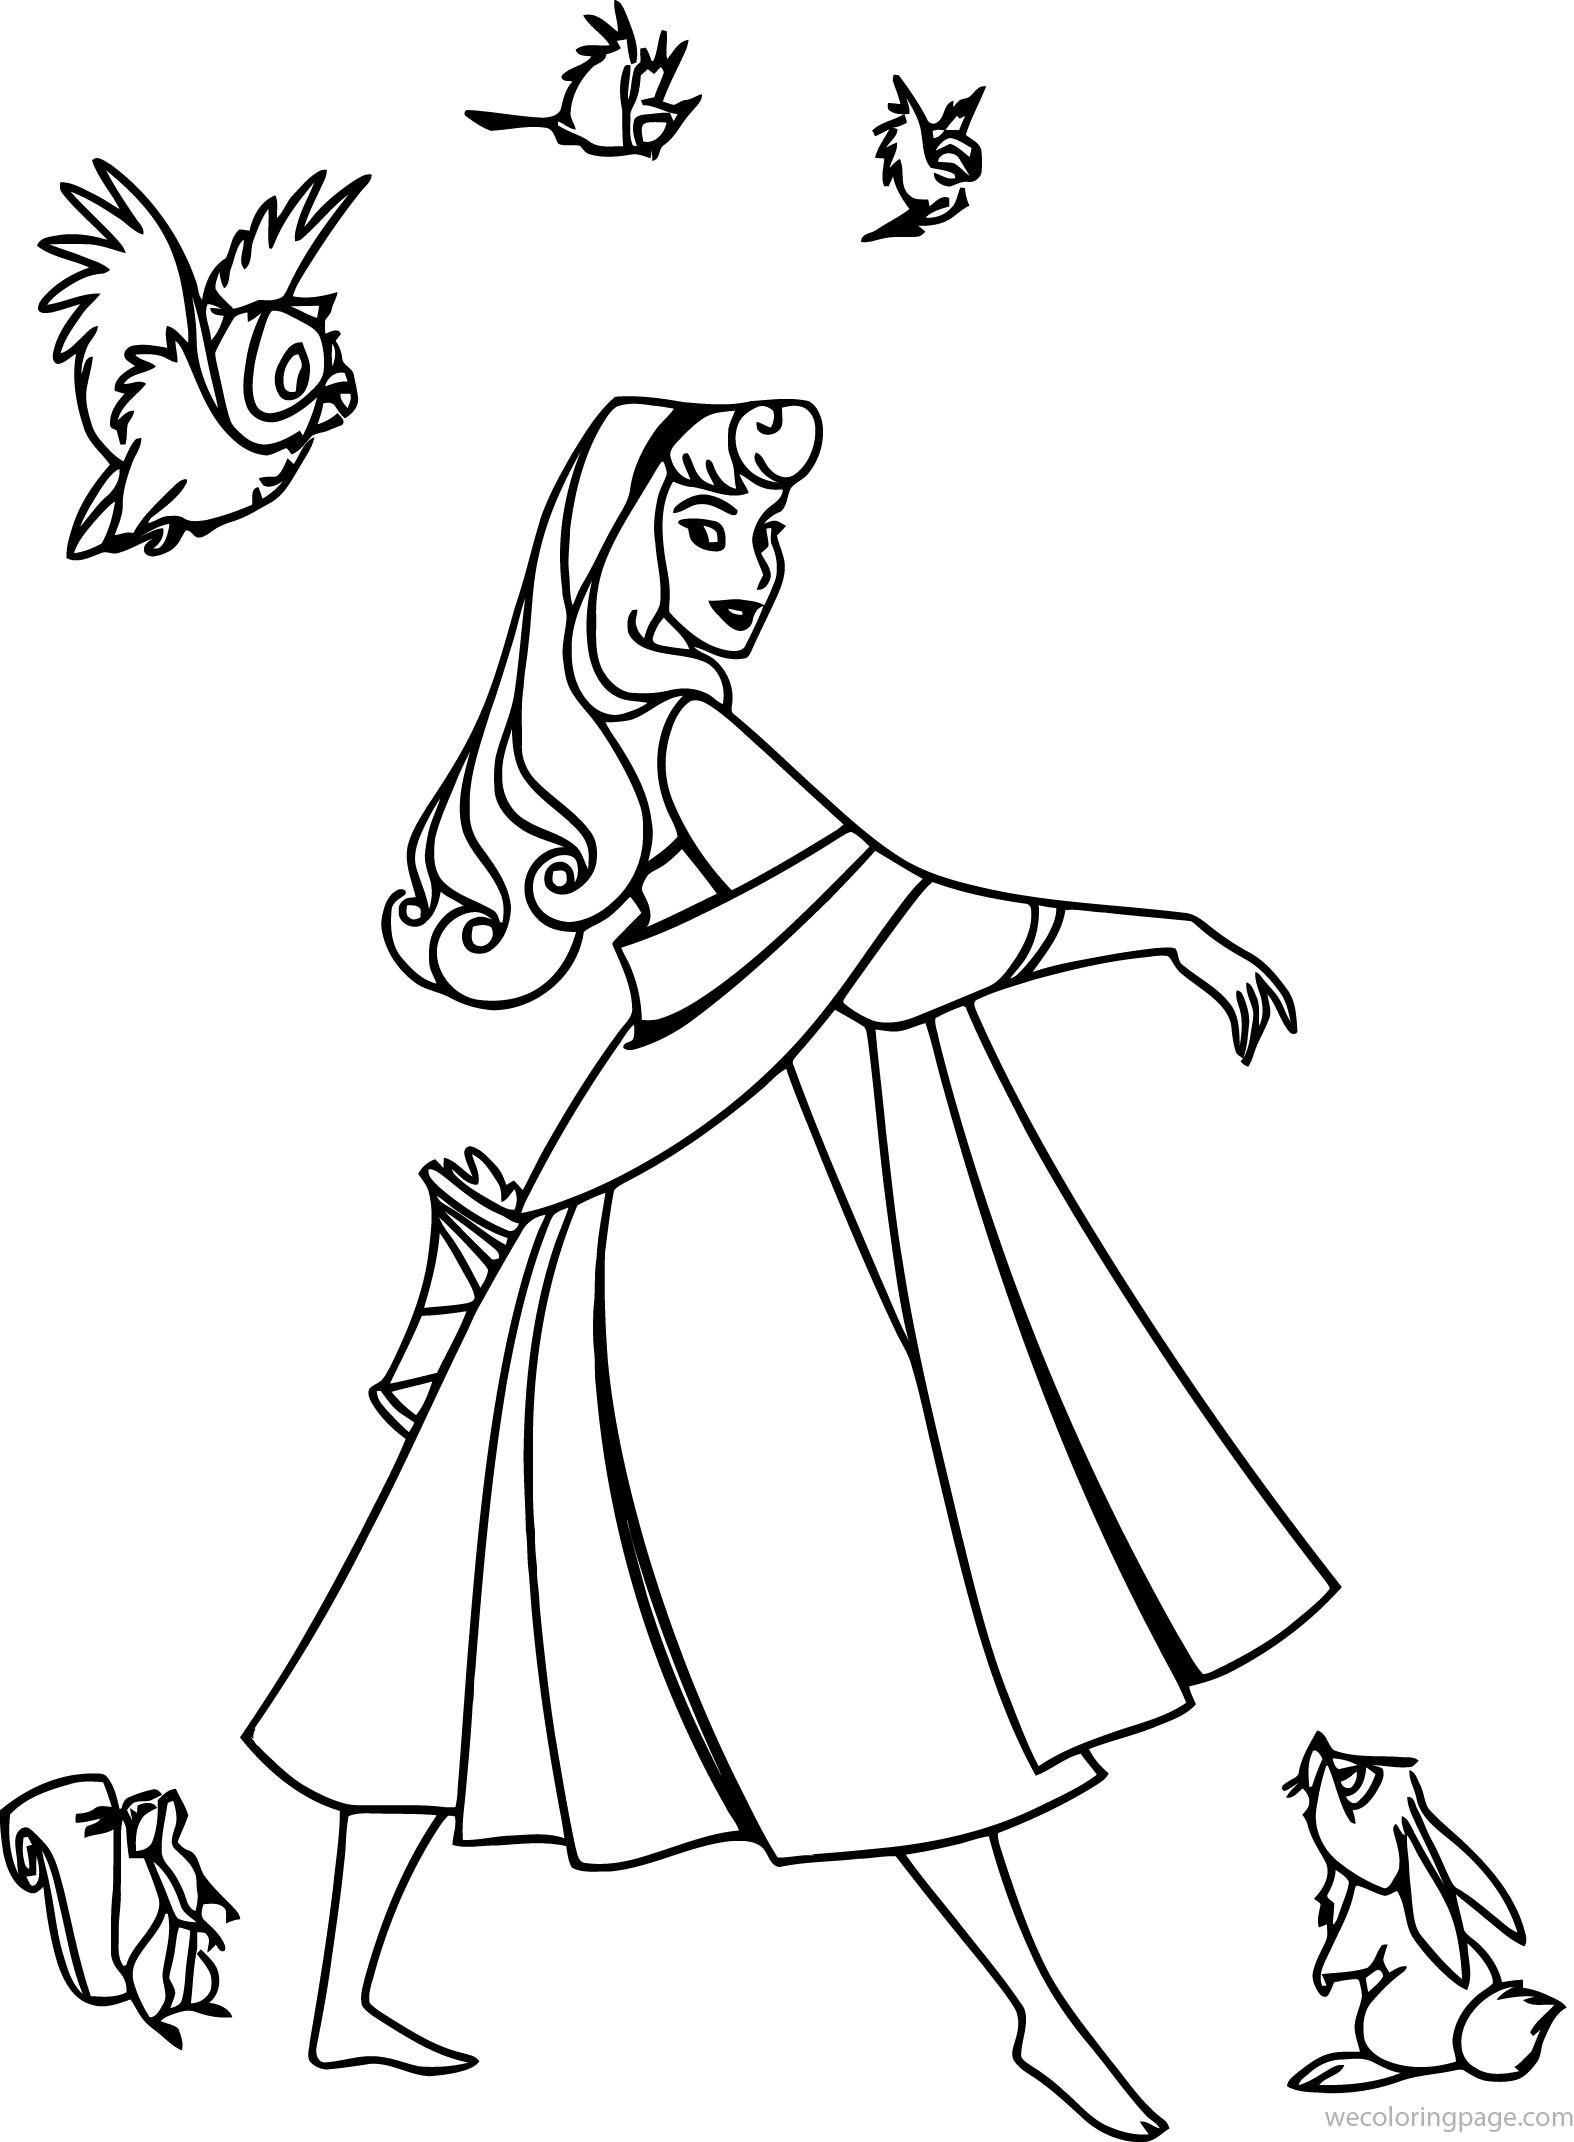 Disney Aurora Sleeping Beauty At Coloring Pages 33